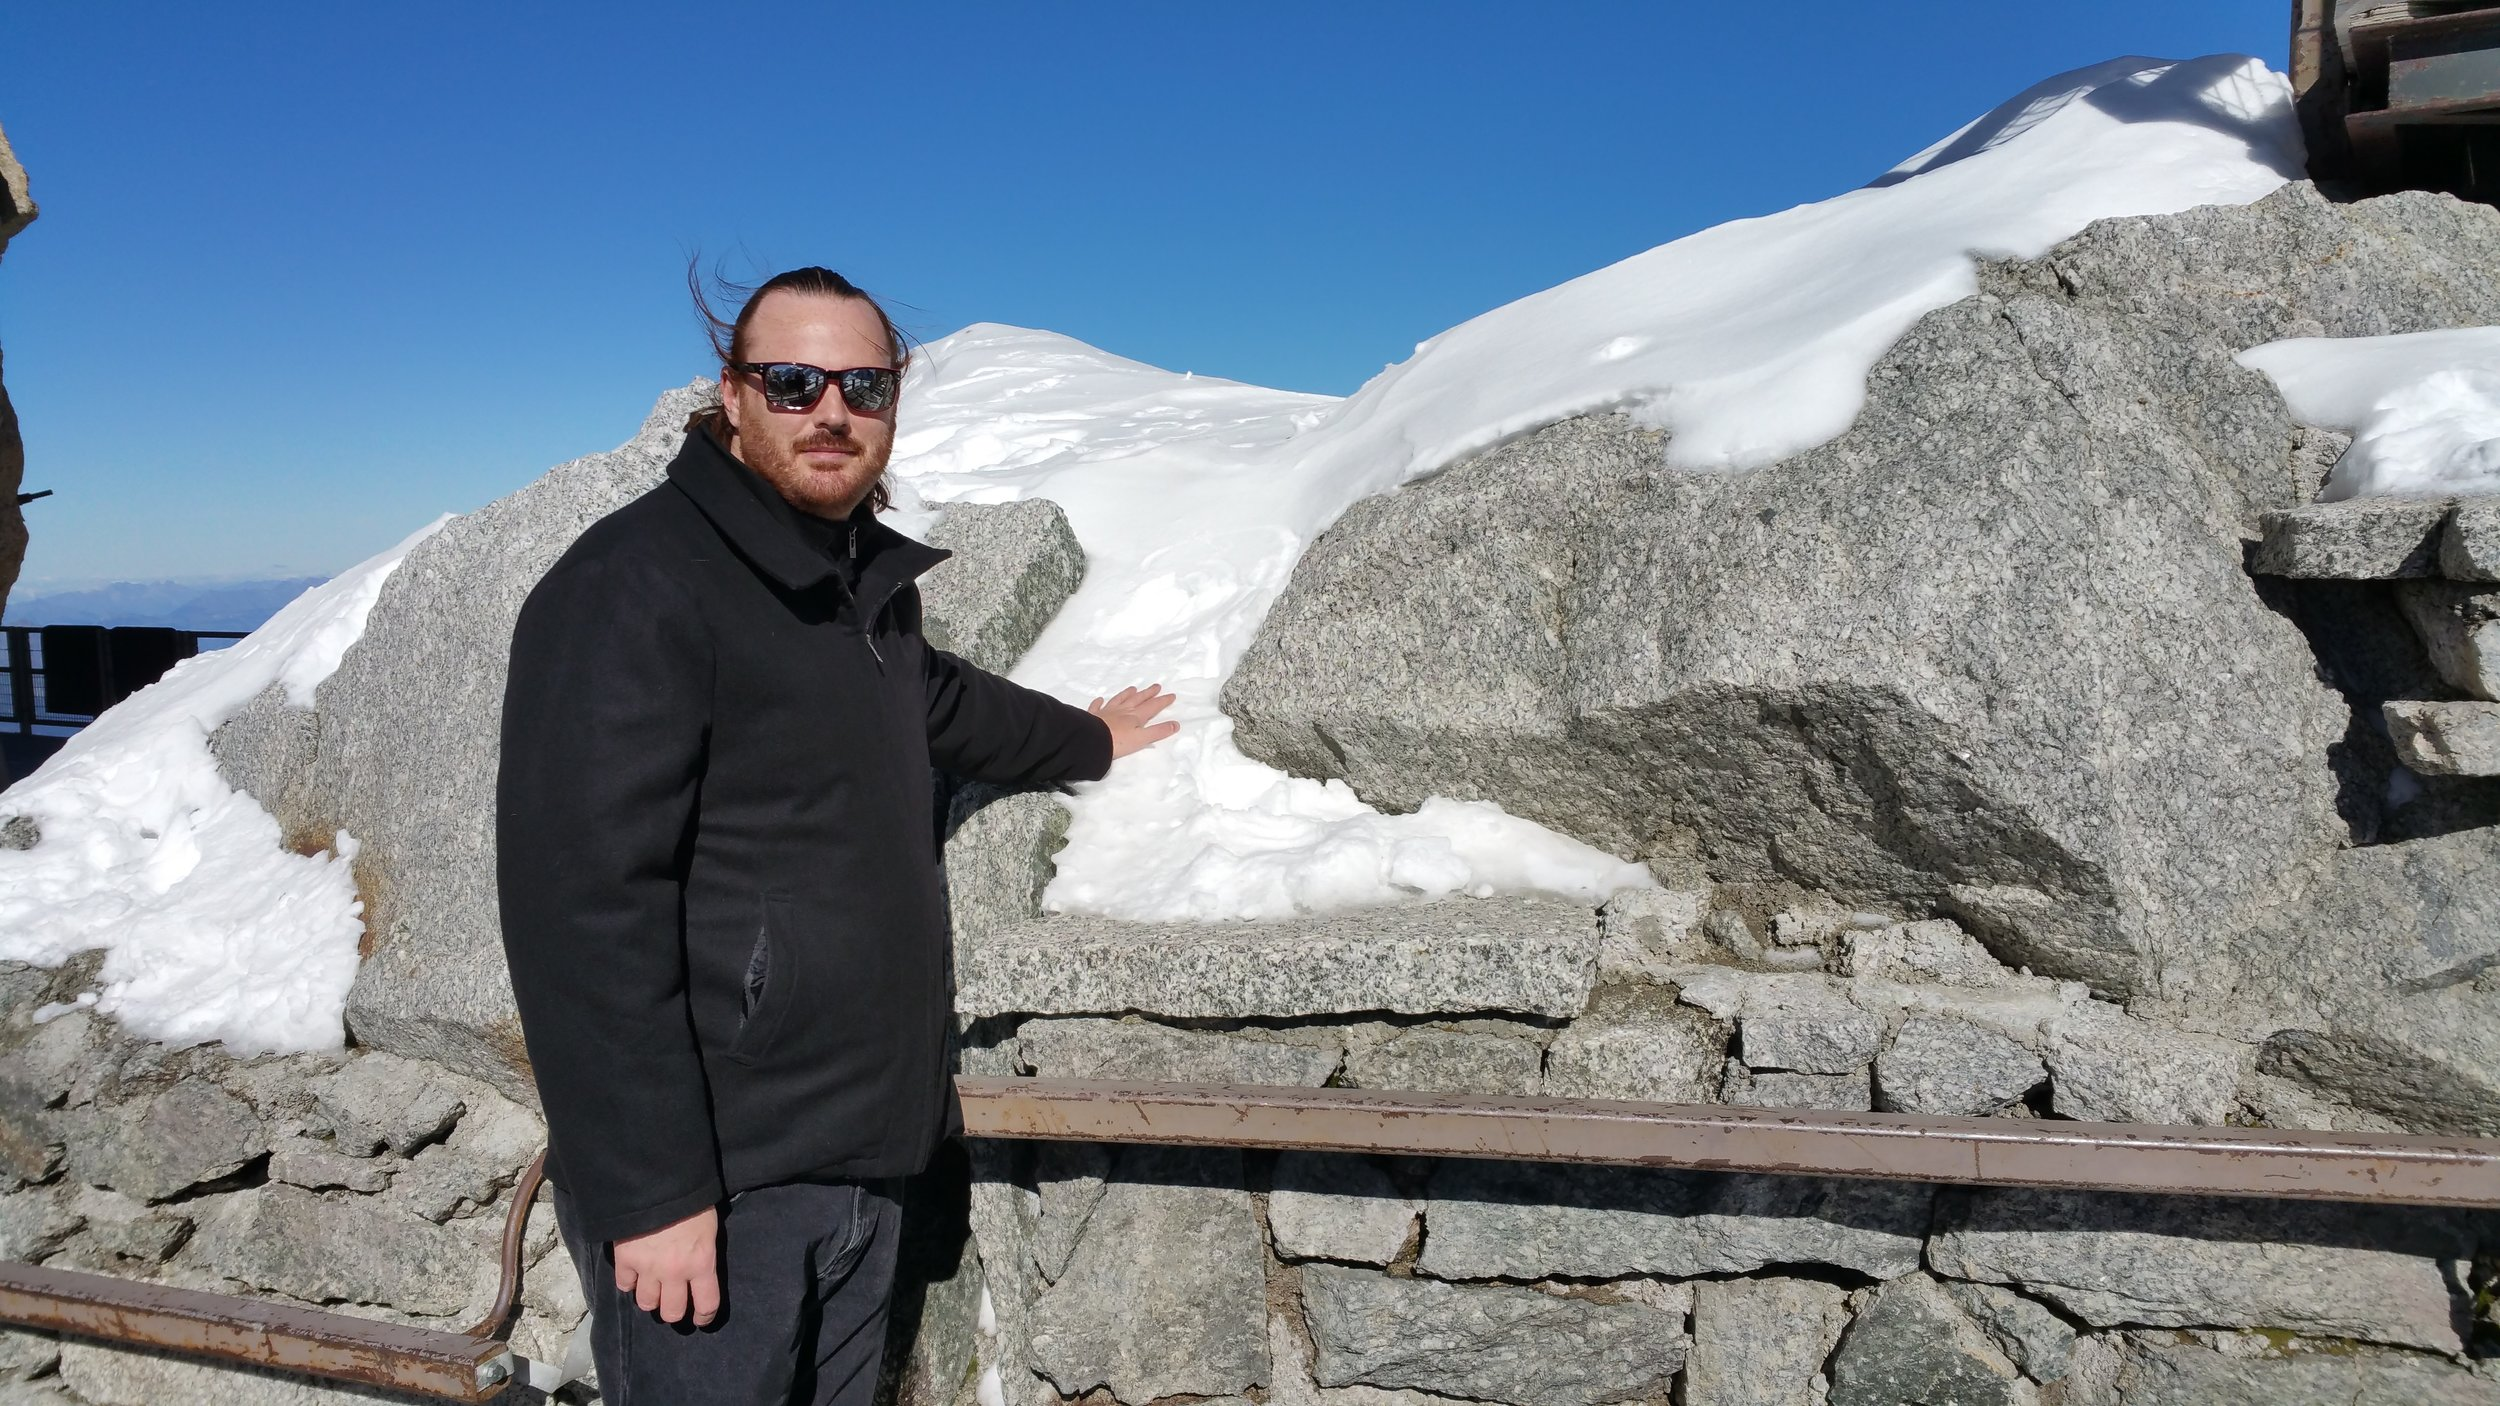 Me touching a glacier? Probably not, but let's go with that.